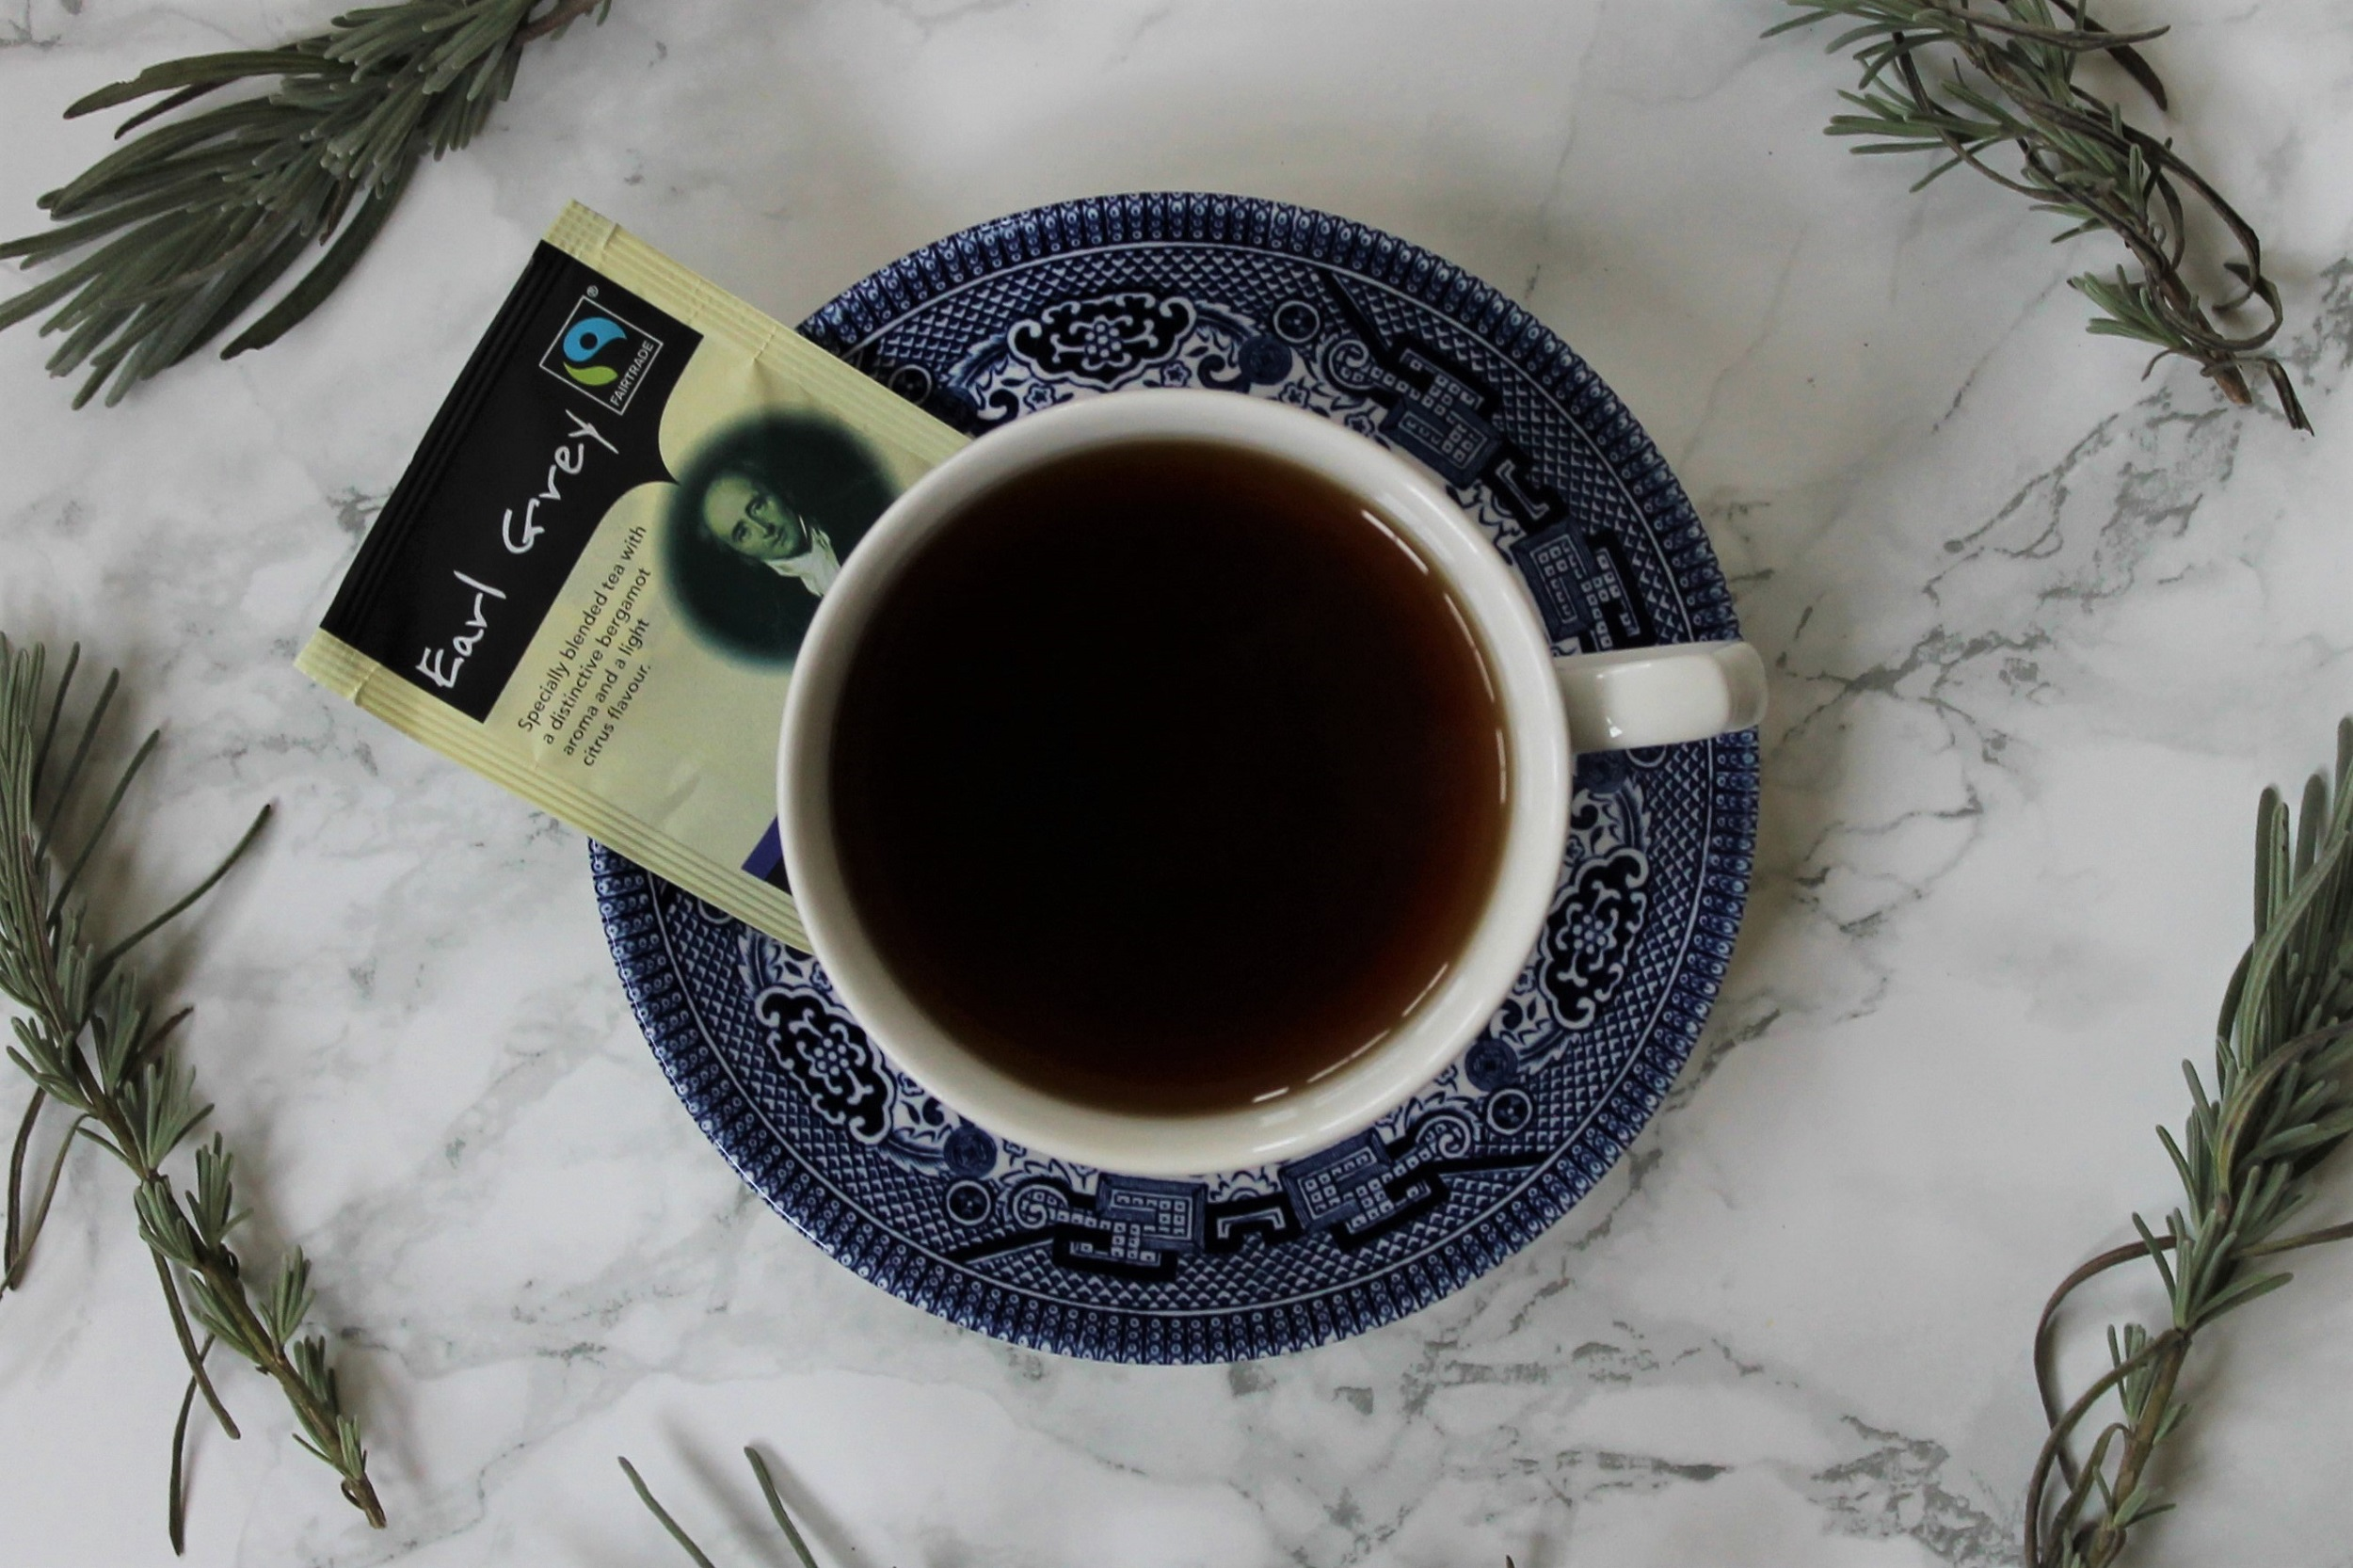 classic earl grey black tea from above